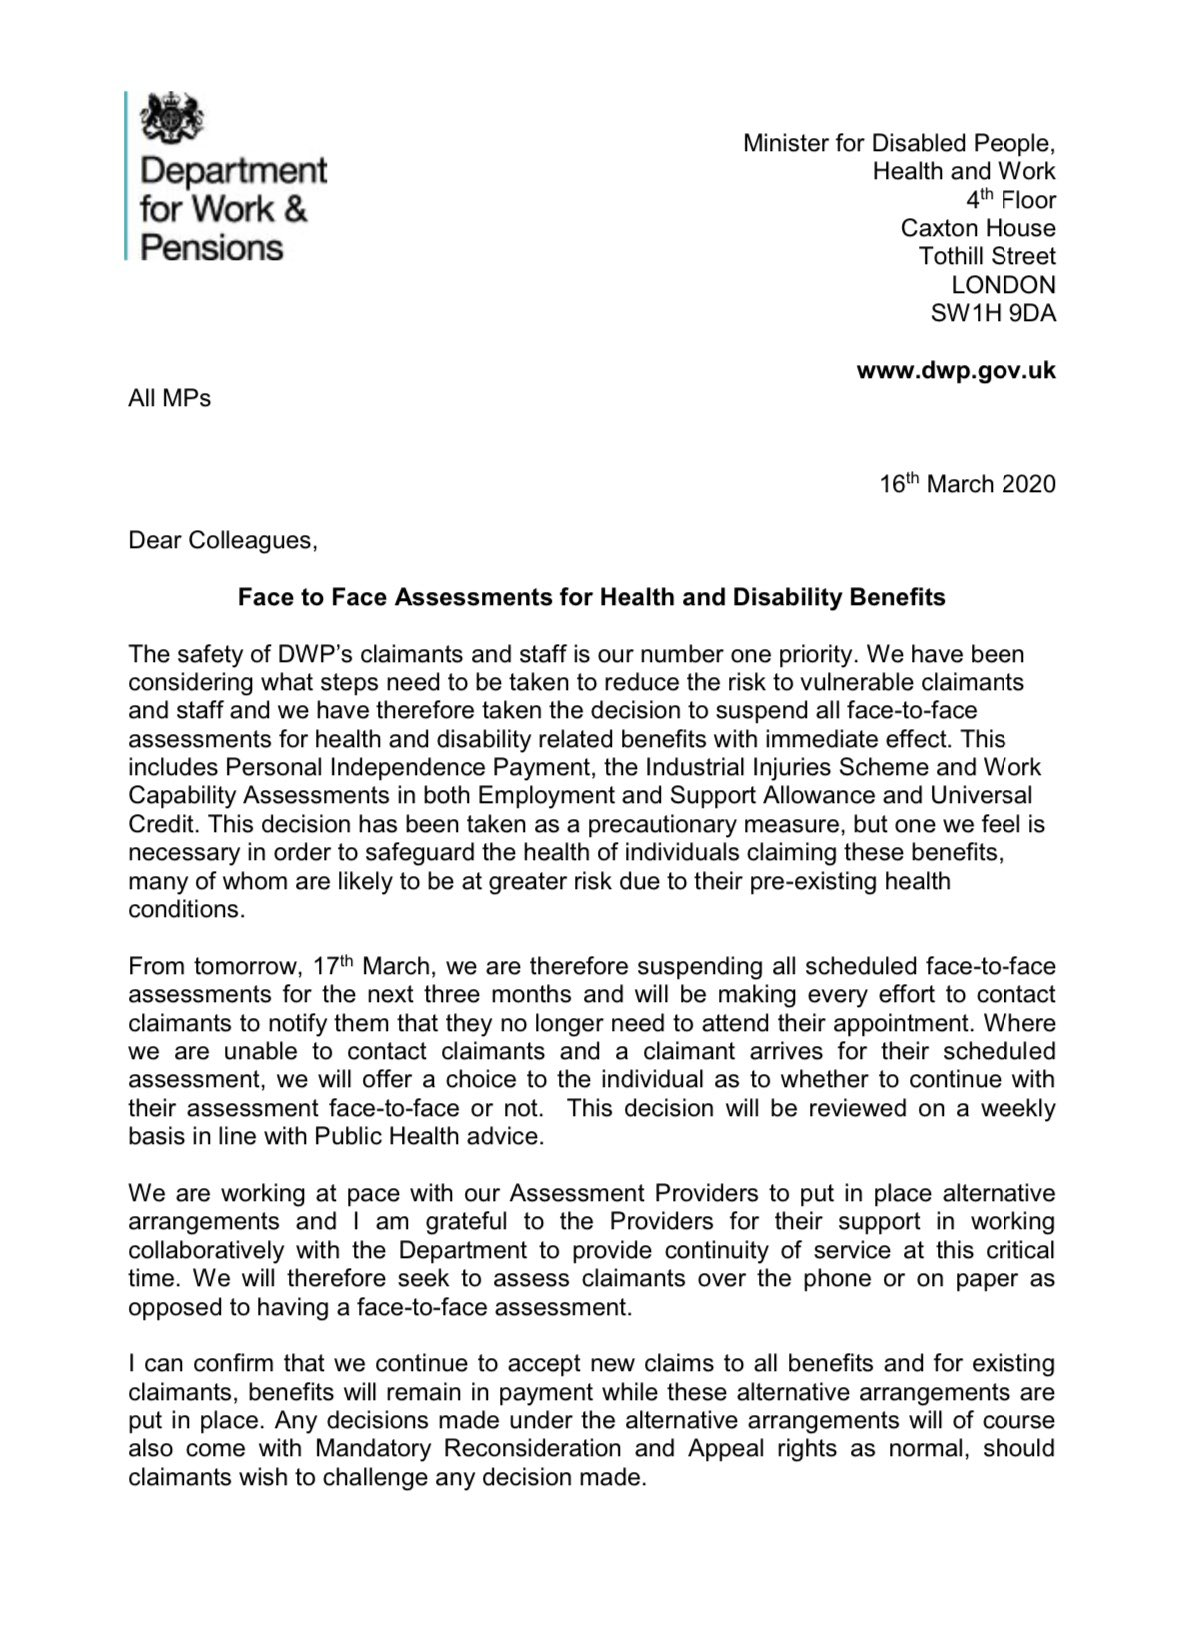 Letter from Minister for Disabled People